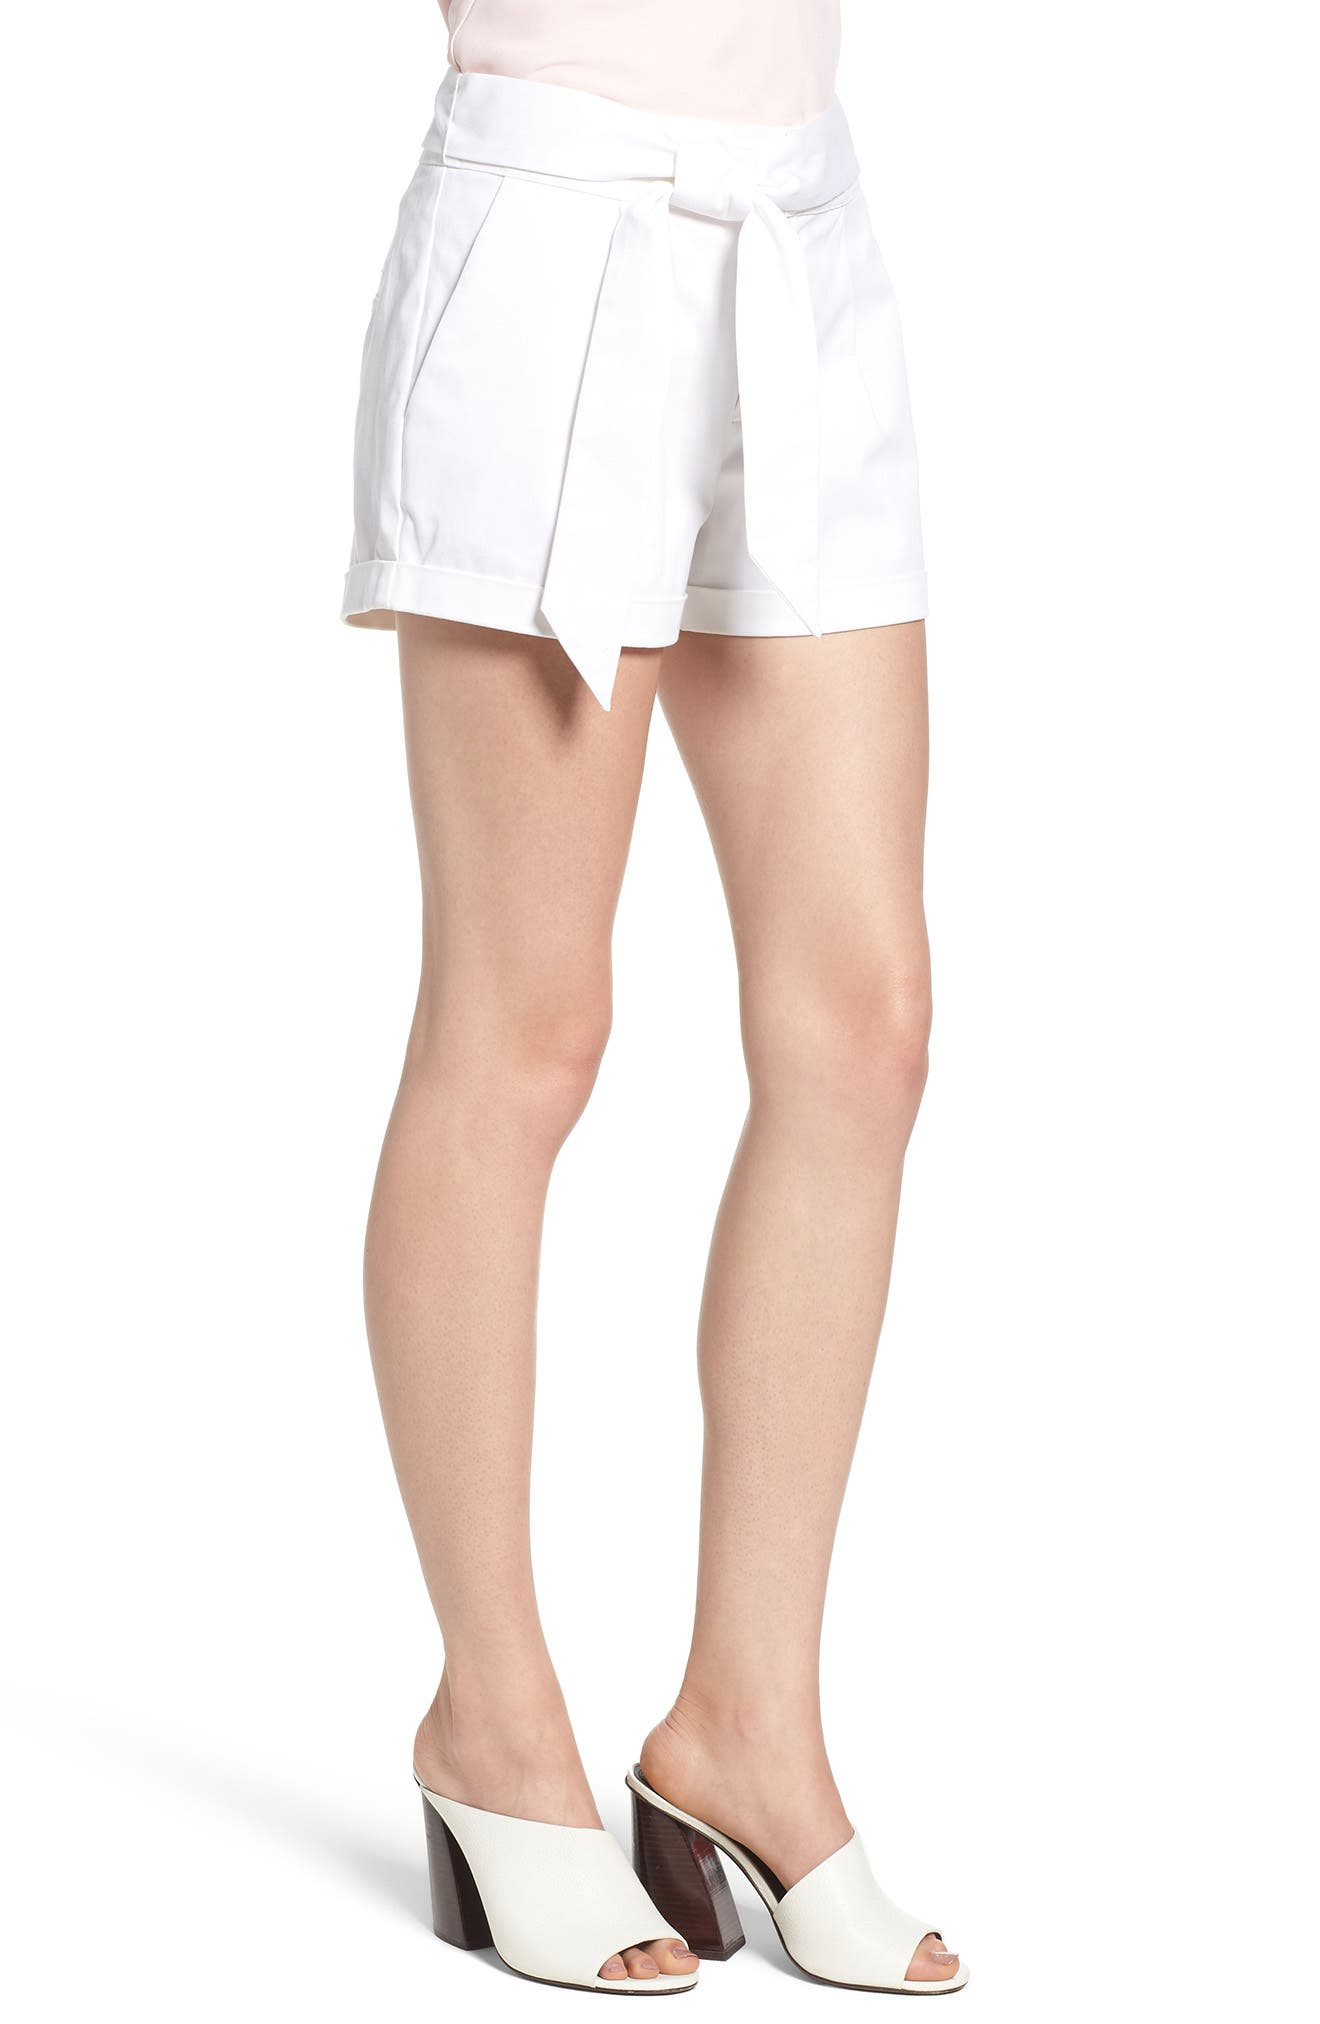 Yelinda Shorts,                             Alternate thumbnail 3, color,                             White